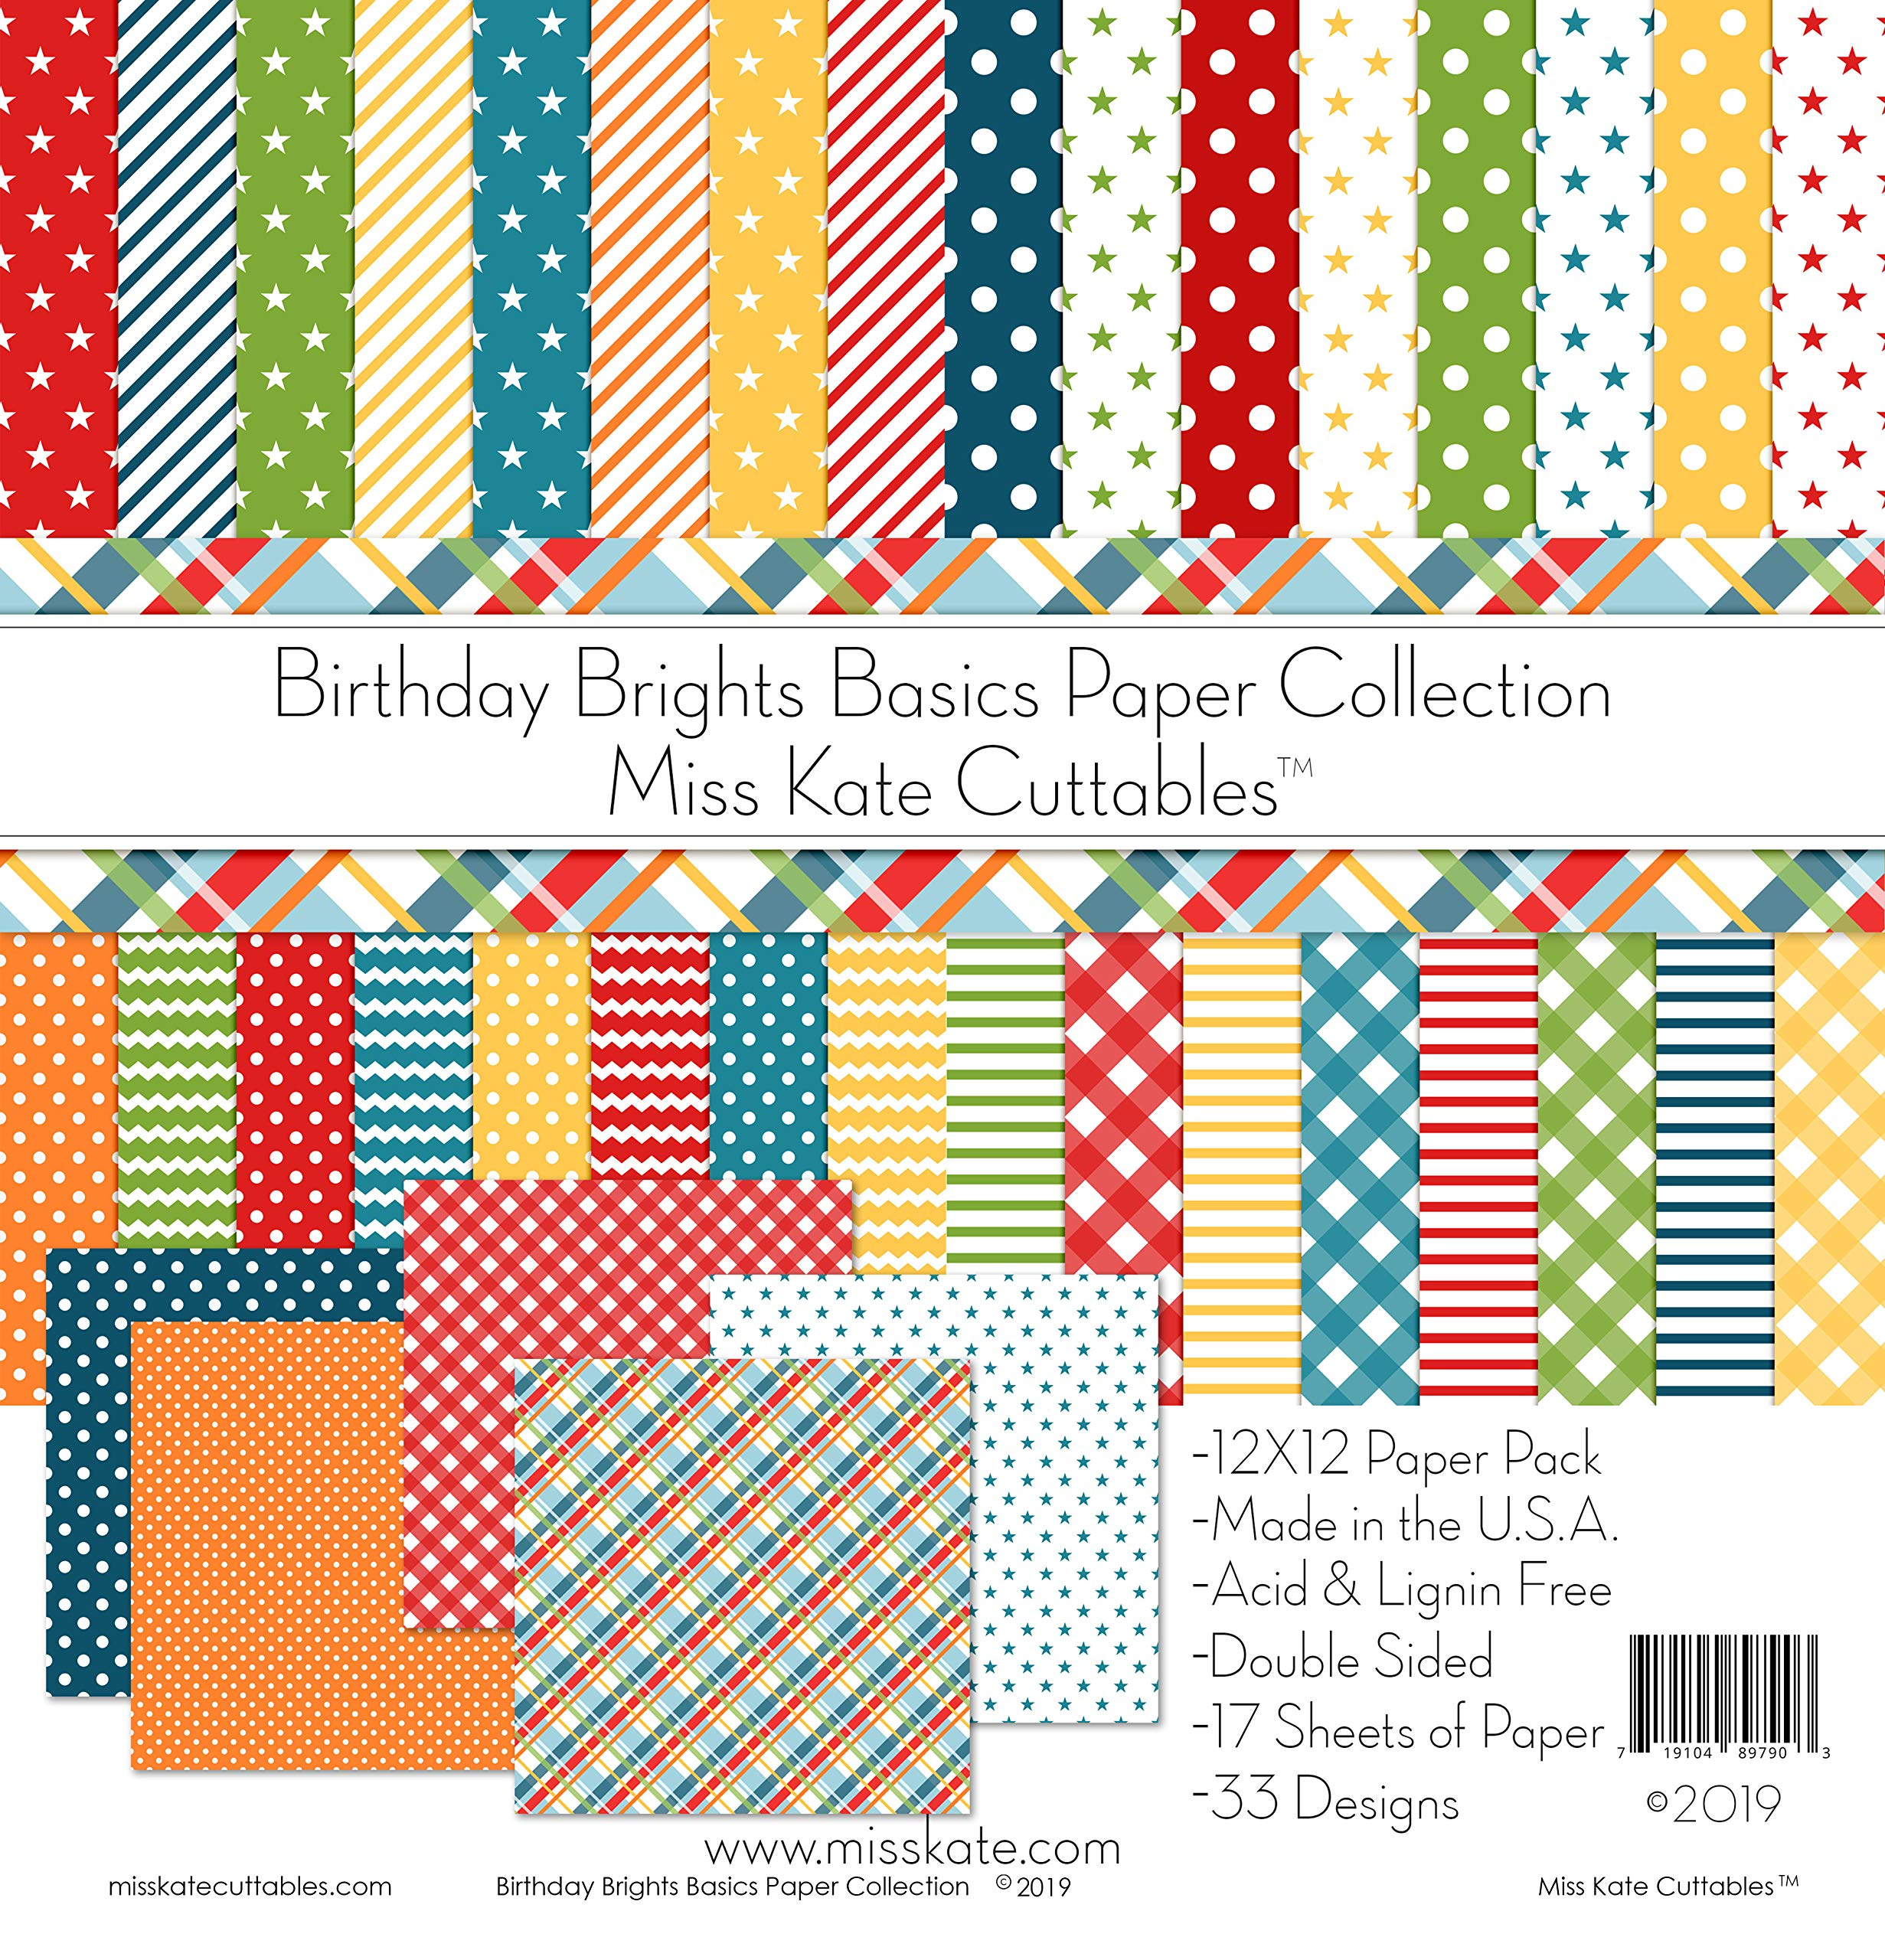 Pattern Paper Pack - Birthday Brights Basics - for Party - 17 Double-Sided 12''x12'' Collection Includes 34 Patterns - Scrapbooking Card Making Crafting - by Miss Kate Cuttables by Miss Kate Cuttables